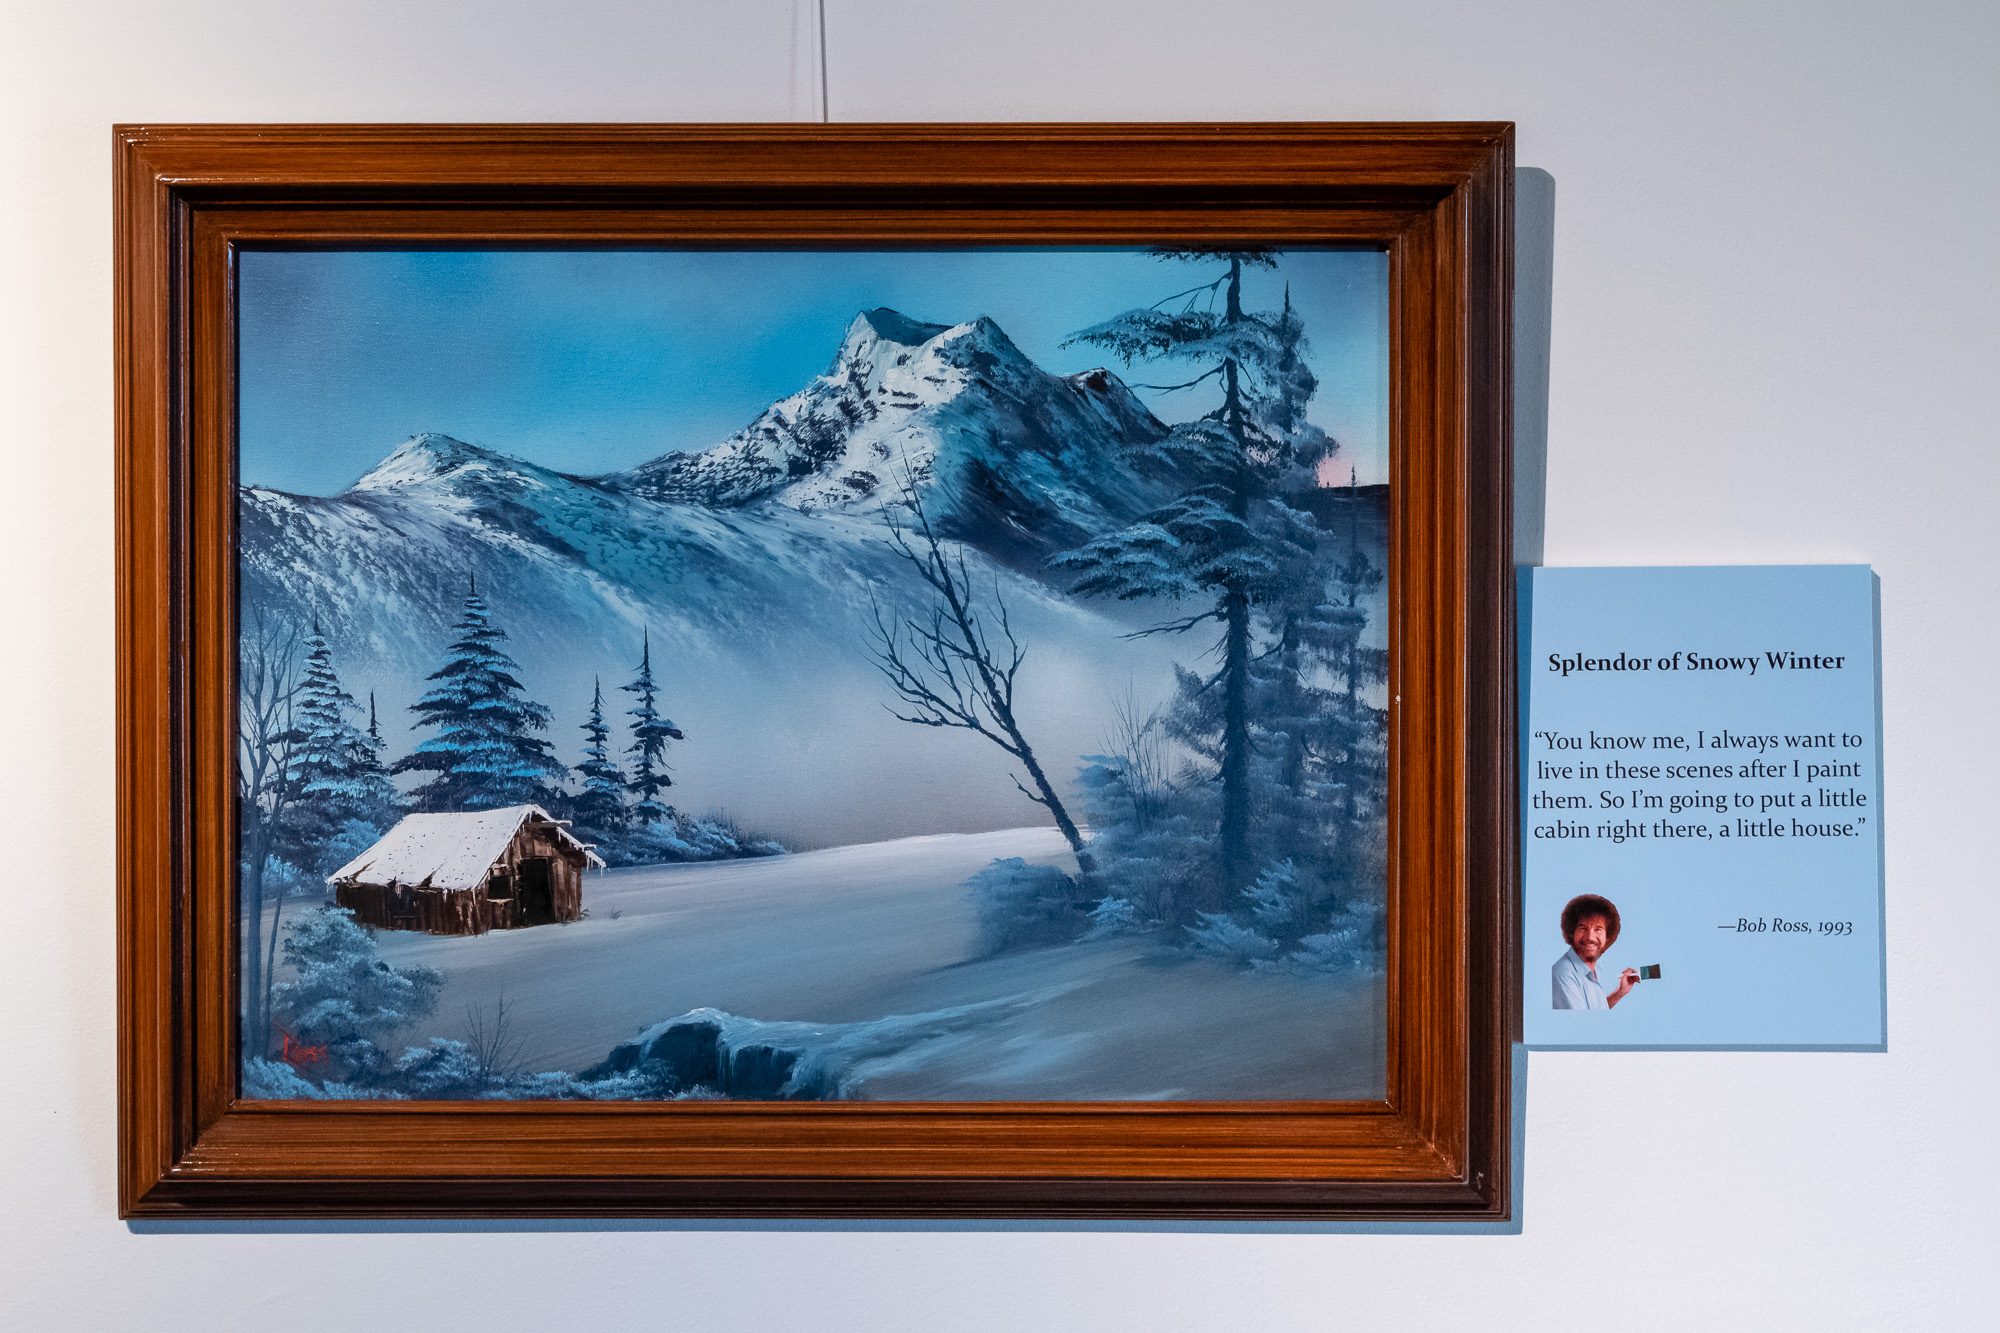 Splendor of Snowy Winter , an original oil painting by Bob Ross, exhibited at Franklin Park Arts Center